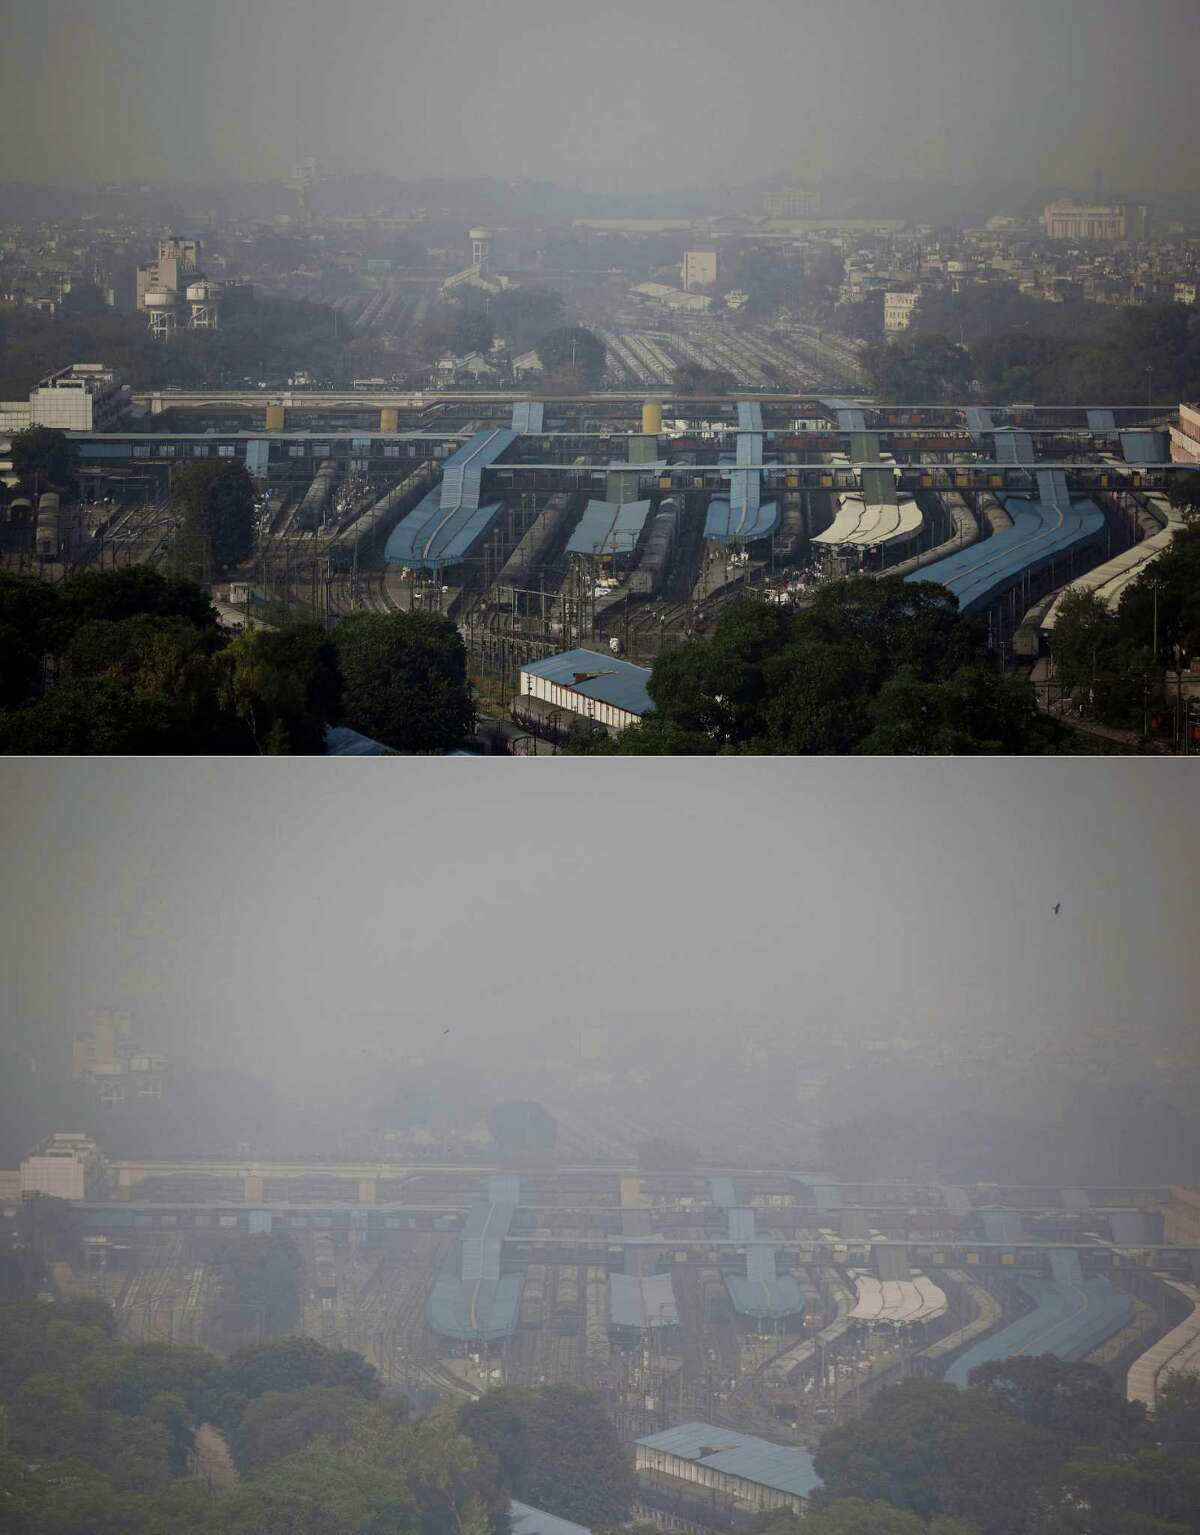 In this combination of two photos, the New Delhi skyline is seen enveloped in smog over a railway station on Oct. 28, 2016, top, and a day after Diwali festival on Oct. 31, 2016, bottom. As Indians wake Monday to smoke-filled skies from a weekend of festival fireworks for the Hindu holiday of Diwali, New Delhi's worst season for air pollution begins, with dire consequences. A new report from UNICEF says about a third of the 2 billion children in the world who are breathing toxic air live in northern India and neighboring countries, risking serious health effects including damage to their lungs, brains and other organs.